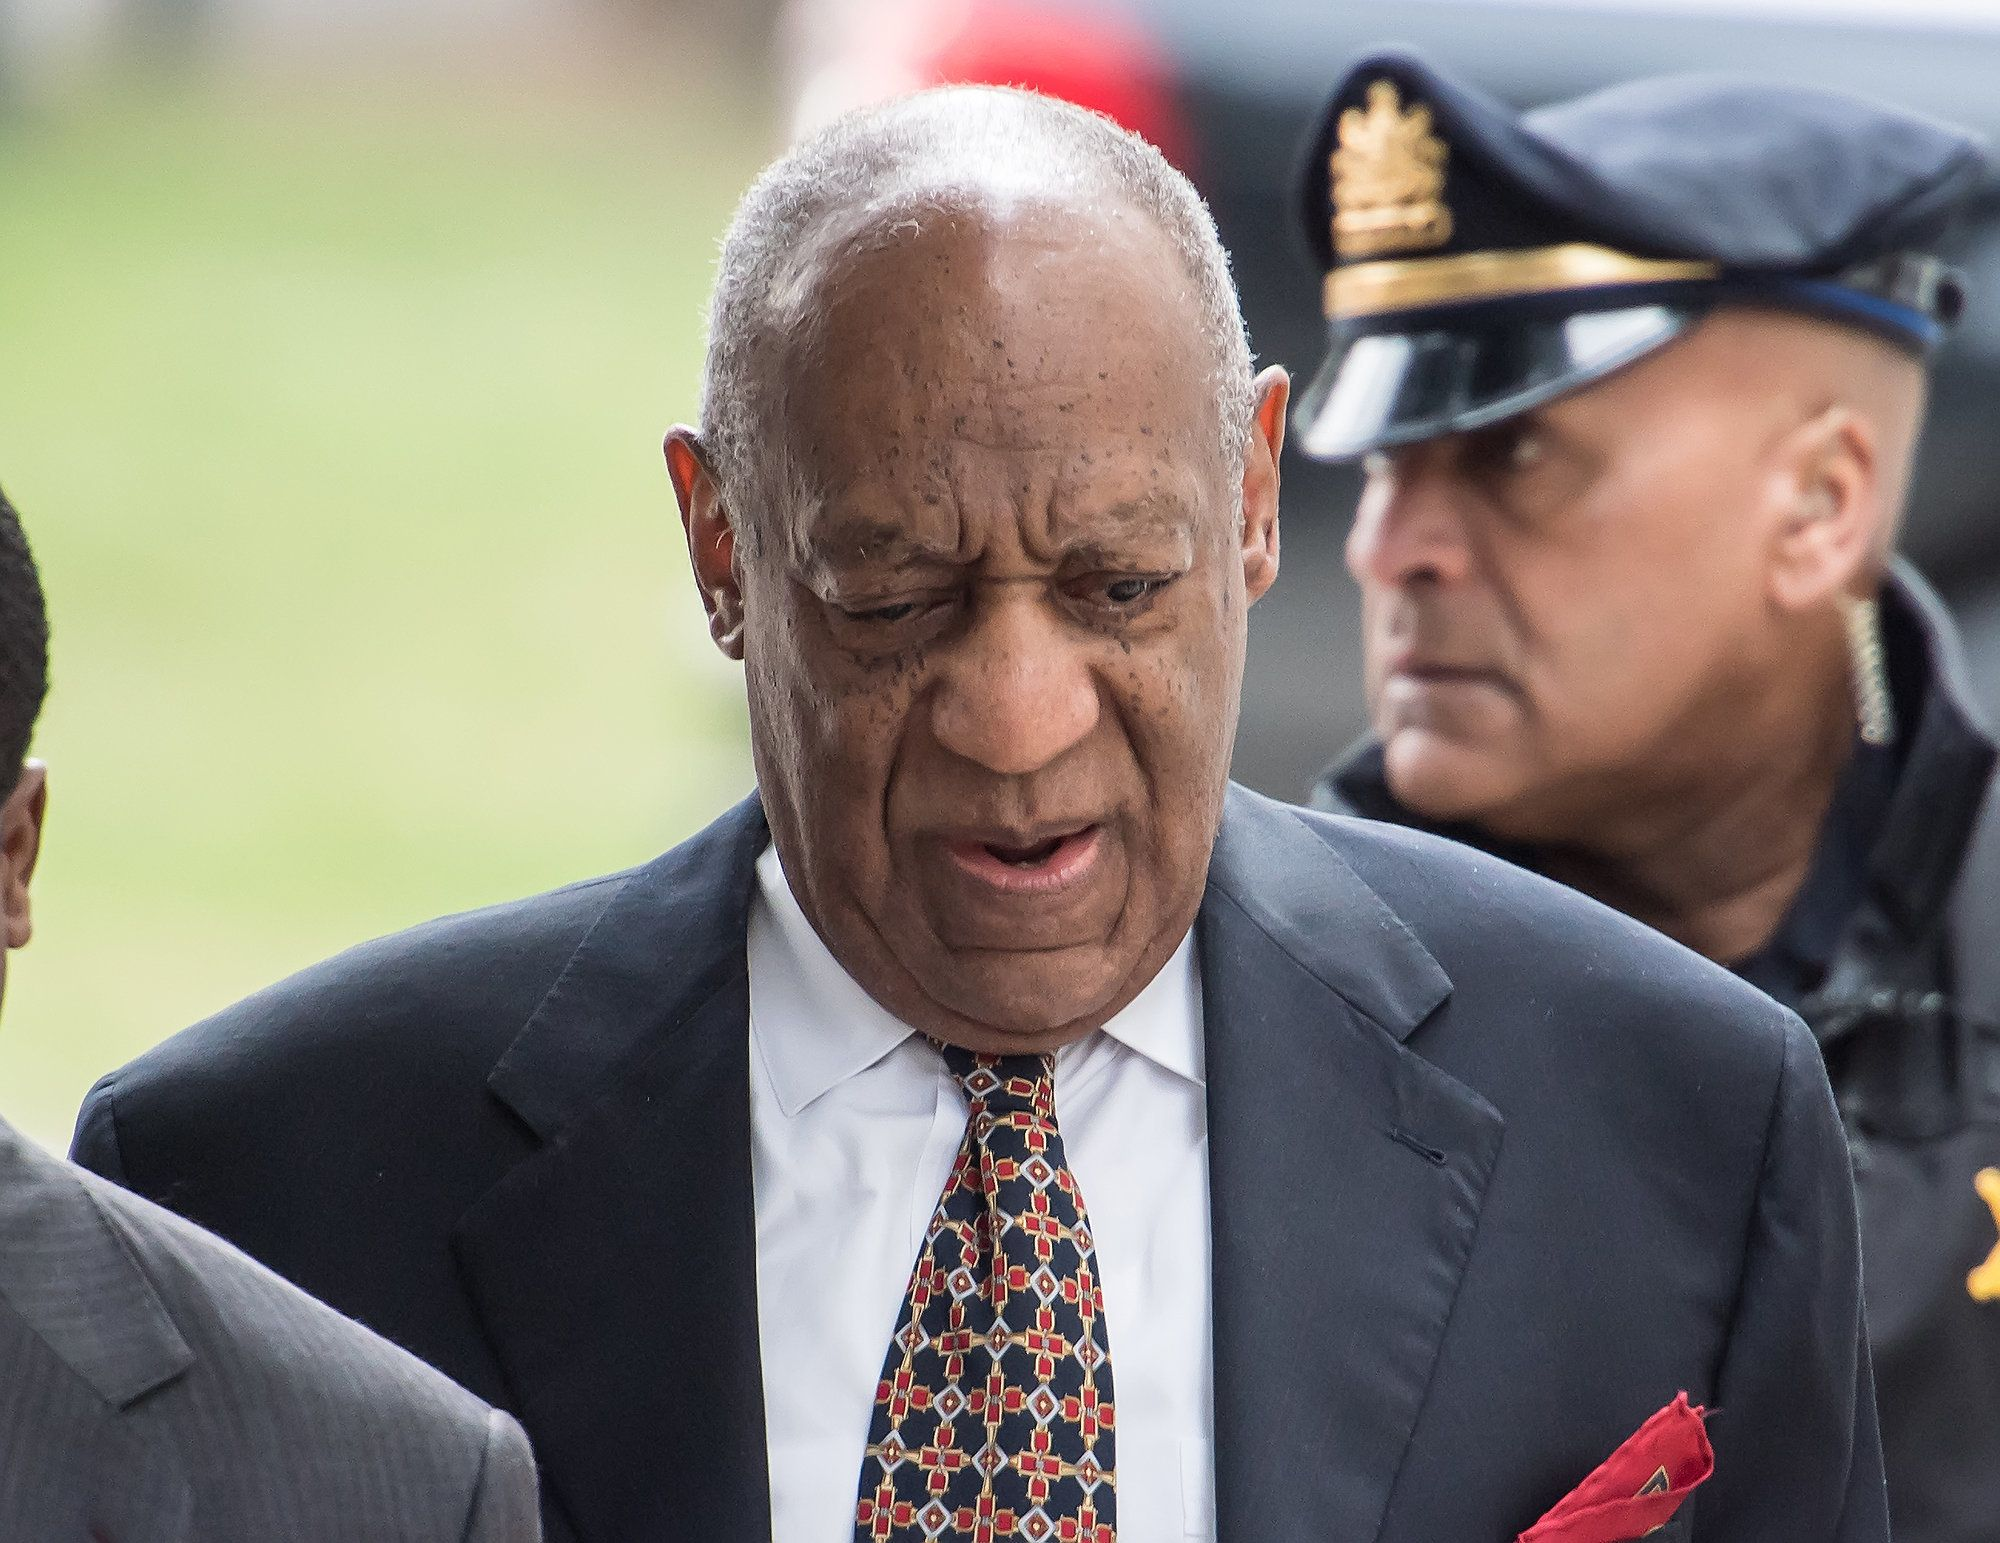 Cosby outside of the Montgomery County Courthouse during the fifth day of his retrial on April 13, 2018.